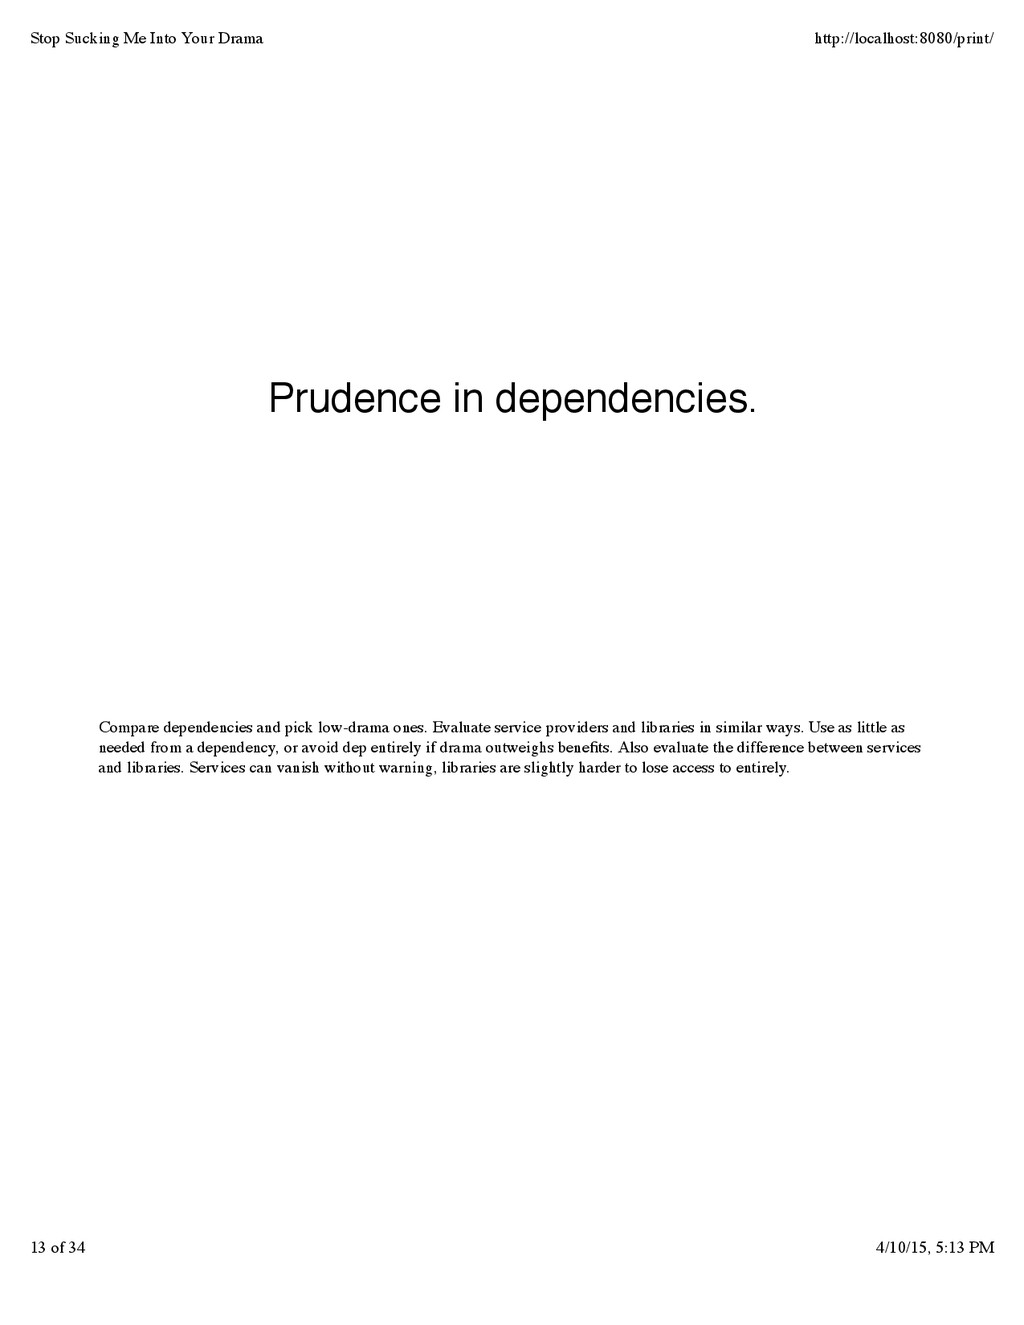 Compare dependencies and pick low-drama ones. E...